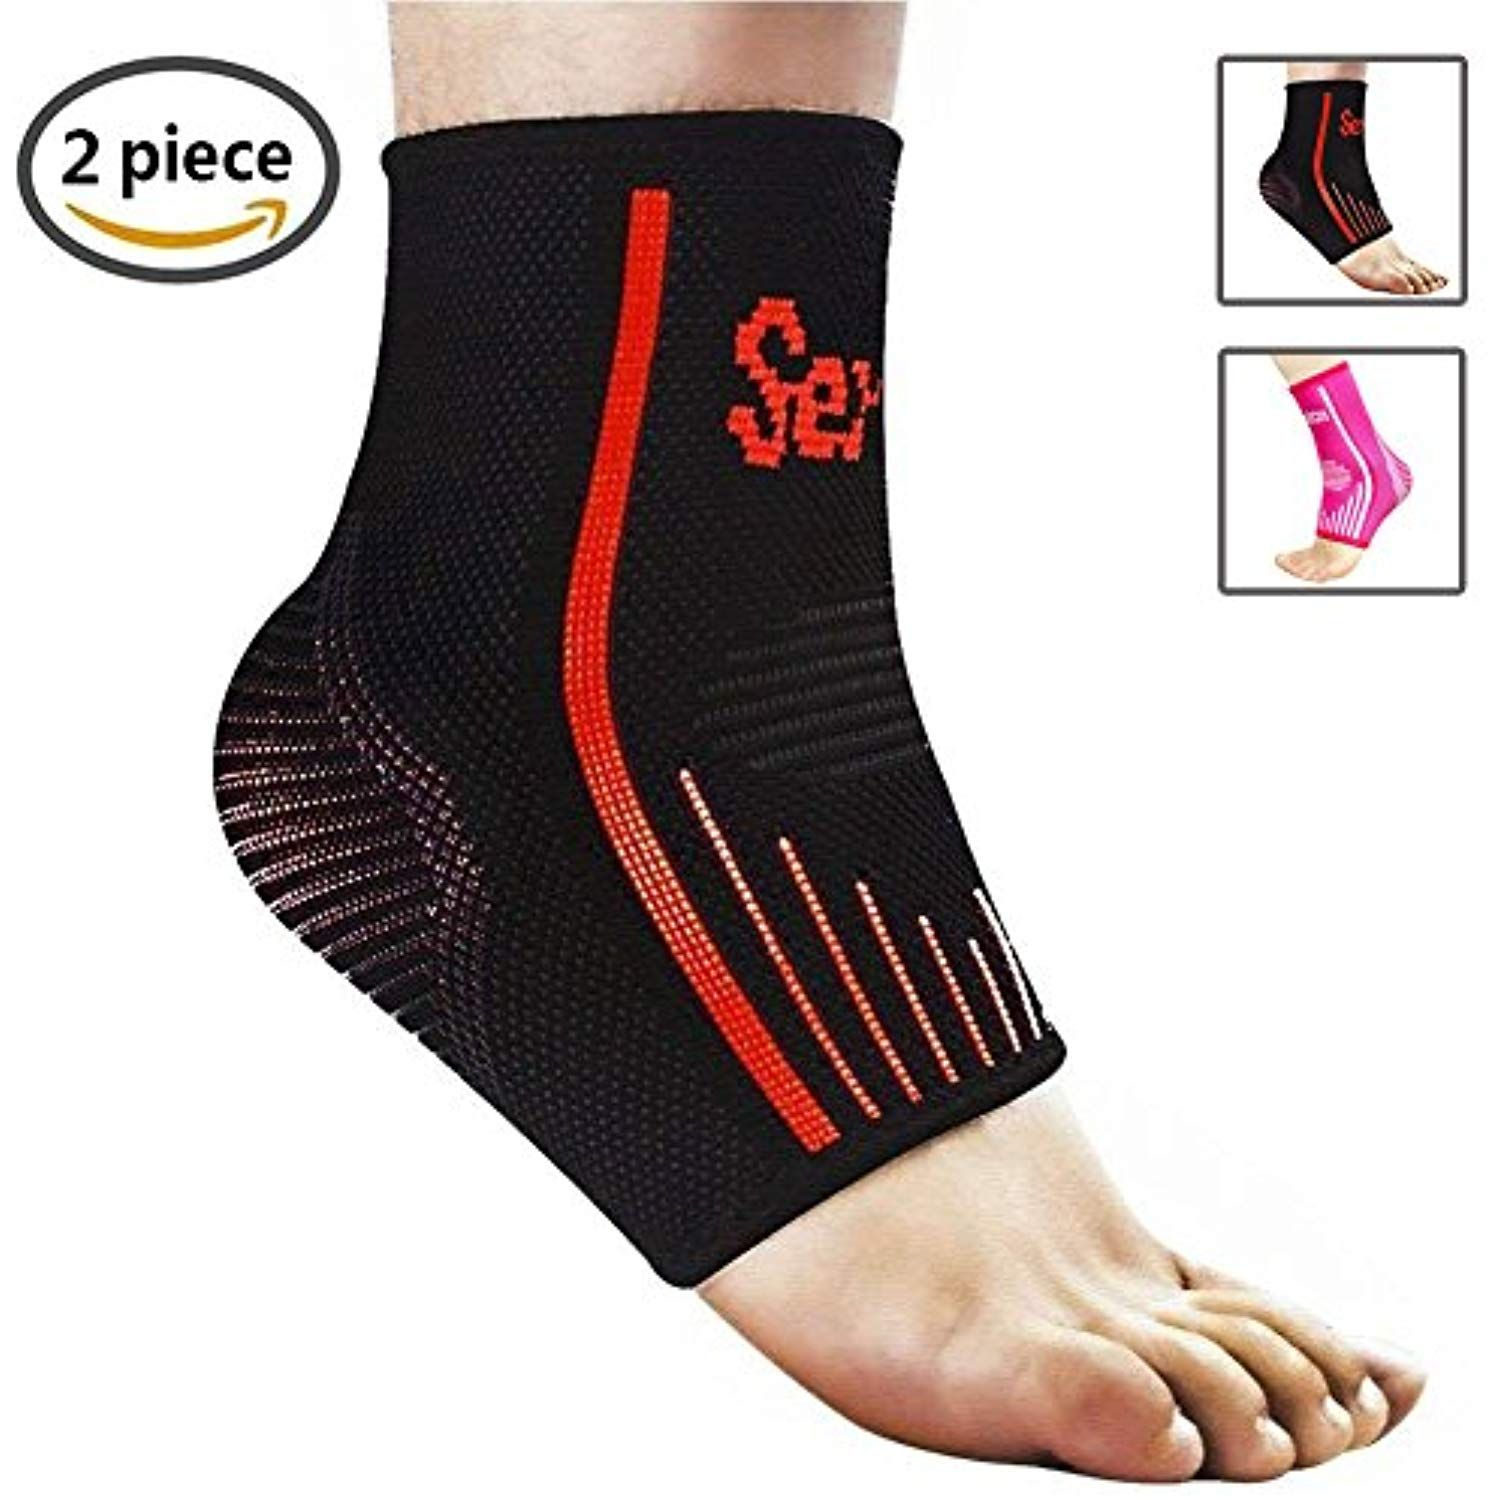 28a7b645e3 Senston Ankle Brace Breathable Ankle Support Compression Ankle Sleeves for  Running Basketball Ankle Sprain Men Women